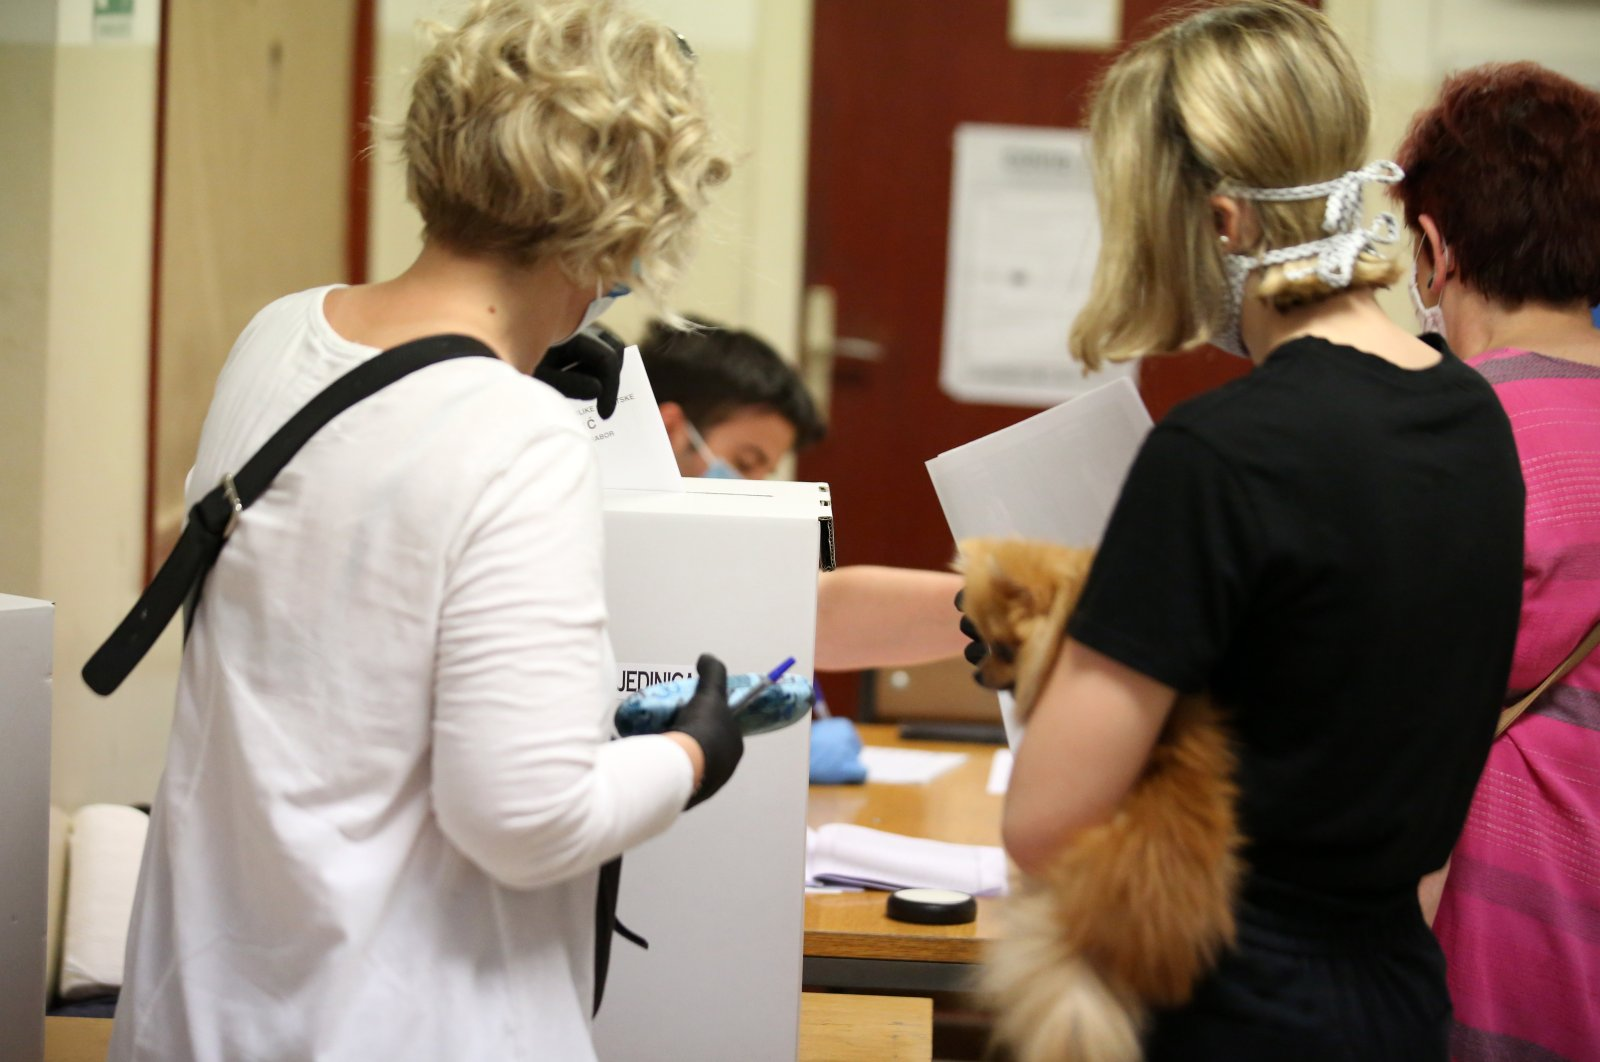 Croatian citizens cast their ballot papers at a polling station during the parliamentary elections, in downtown Zagreb, Croatia, July 5, 2020. (EPA Photo)